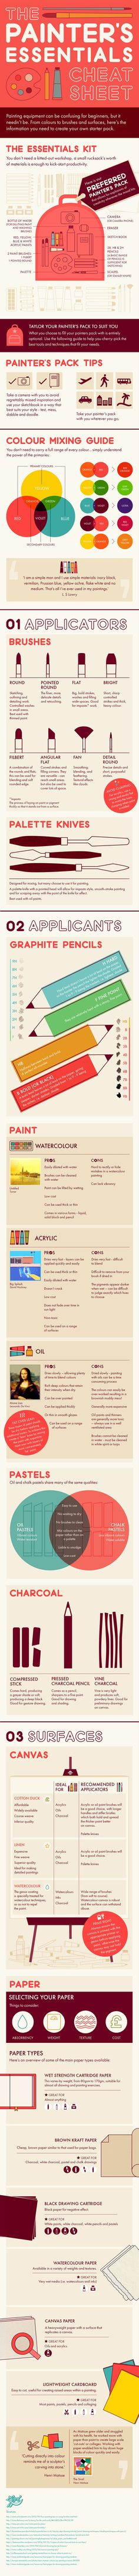 Someday I'm going to start painting.  I'll need this painting cheat sheet #Infographic